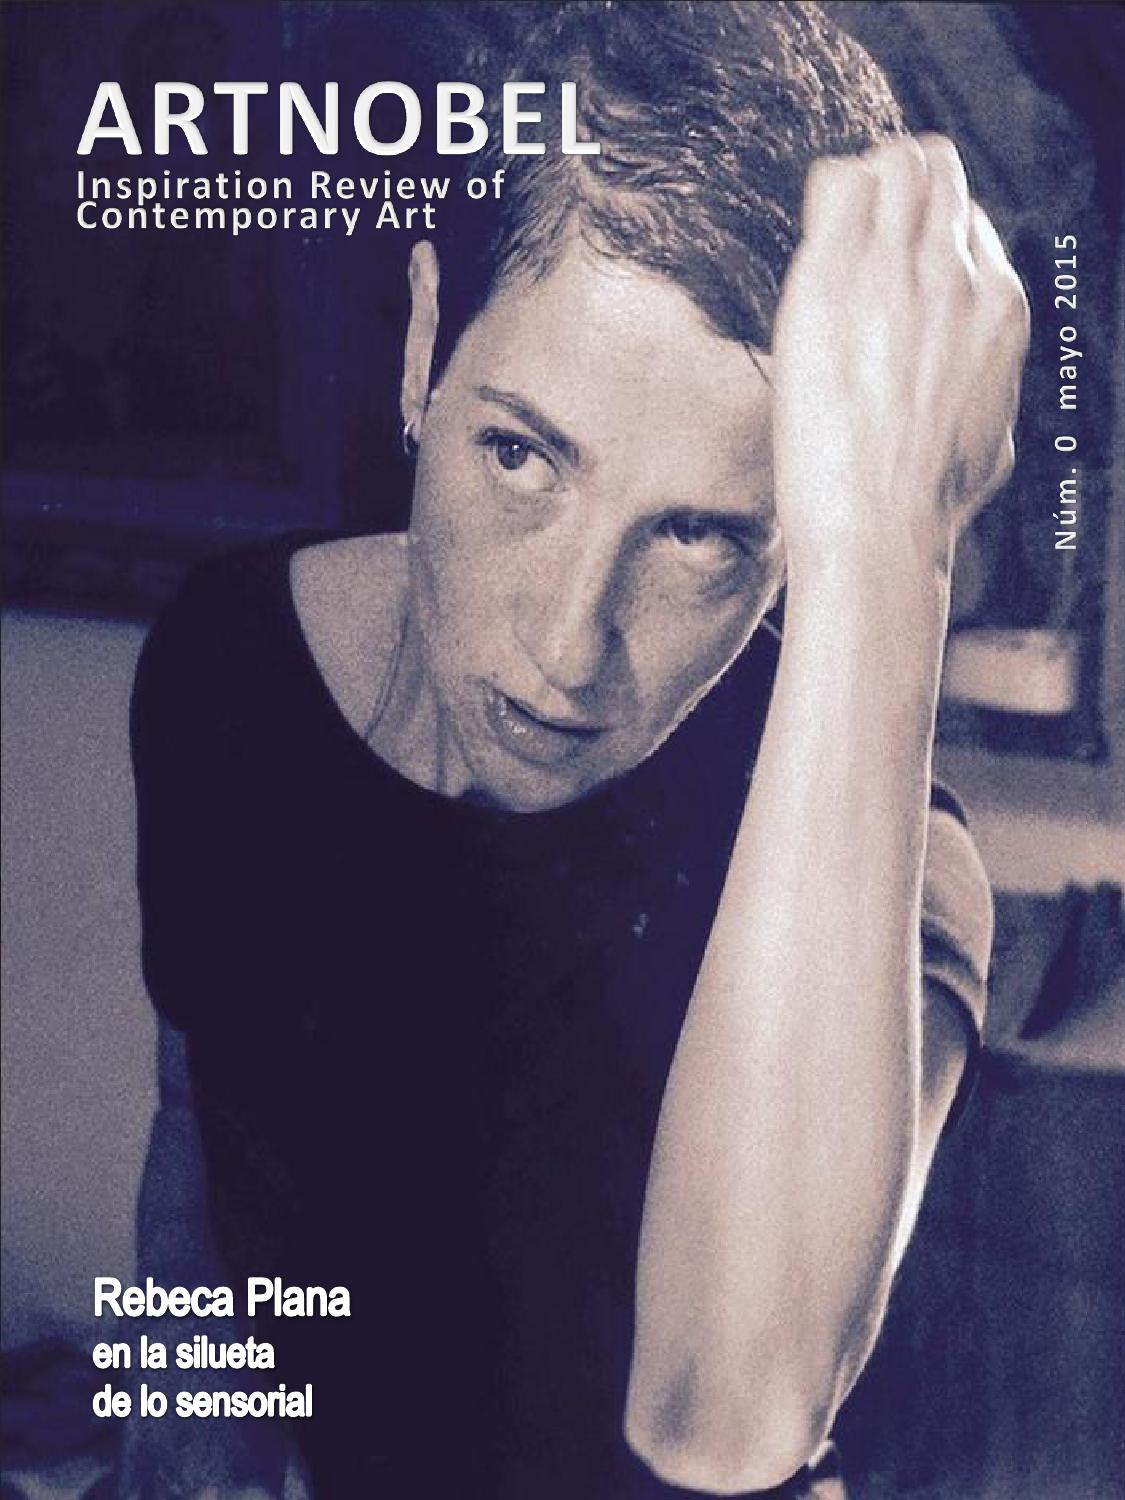 Rebeca Plana en la portada del núm. 0 de ARTNOBEL Inspiration Review of Contemporary Art